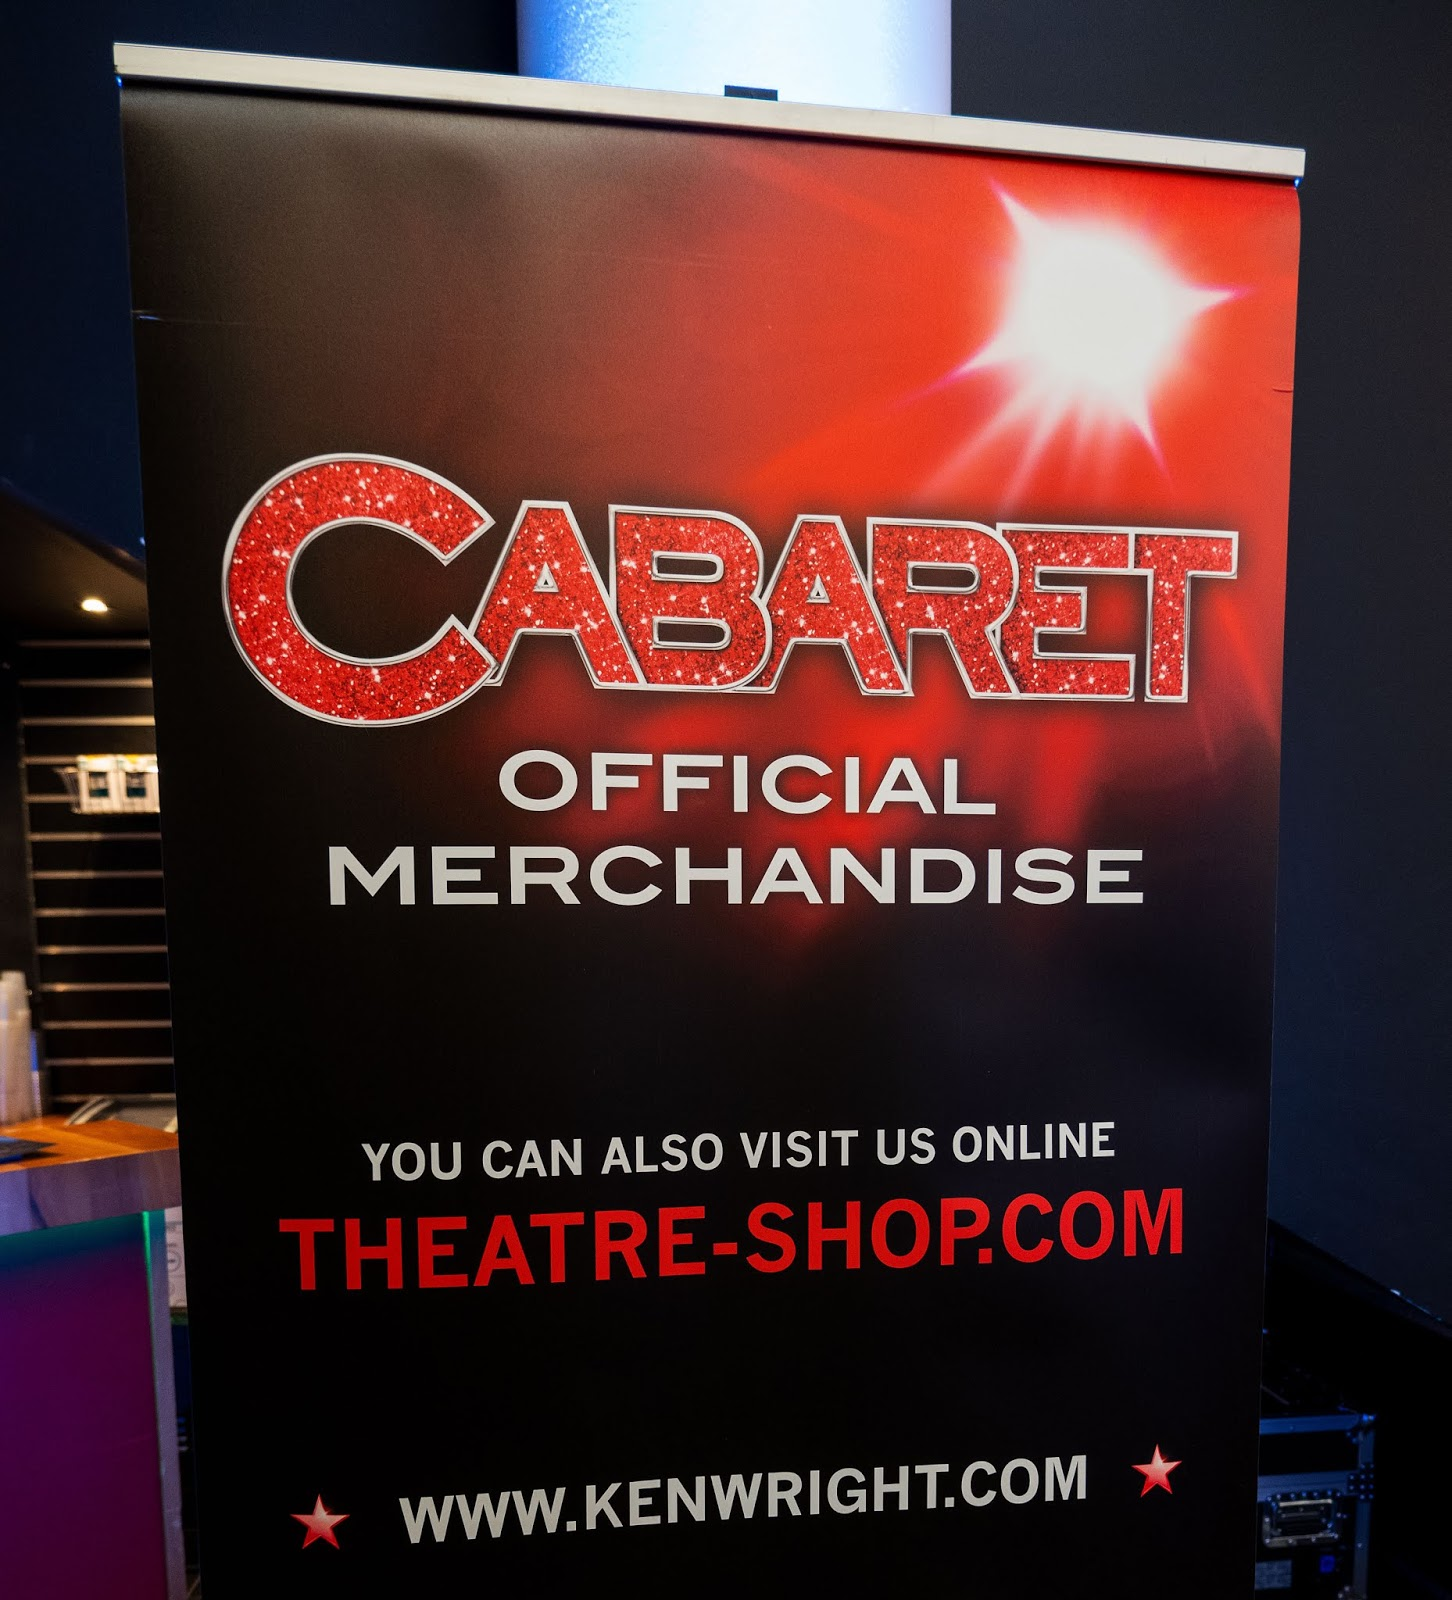 Cabaret banner in The Marlowe Theatre lobby